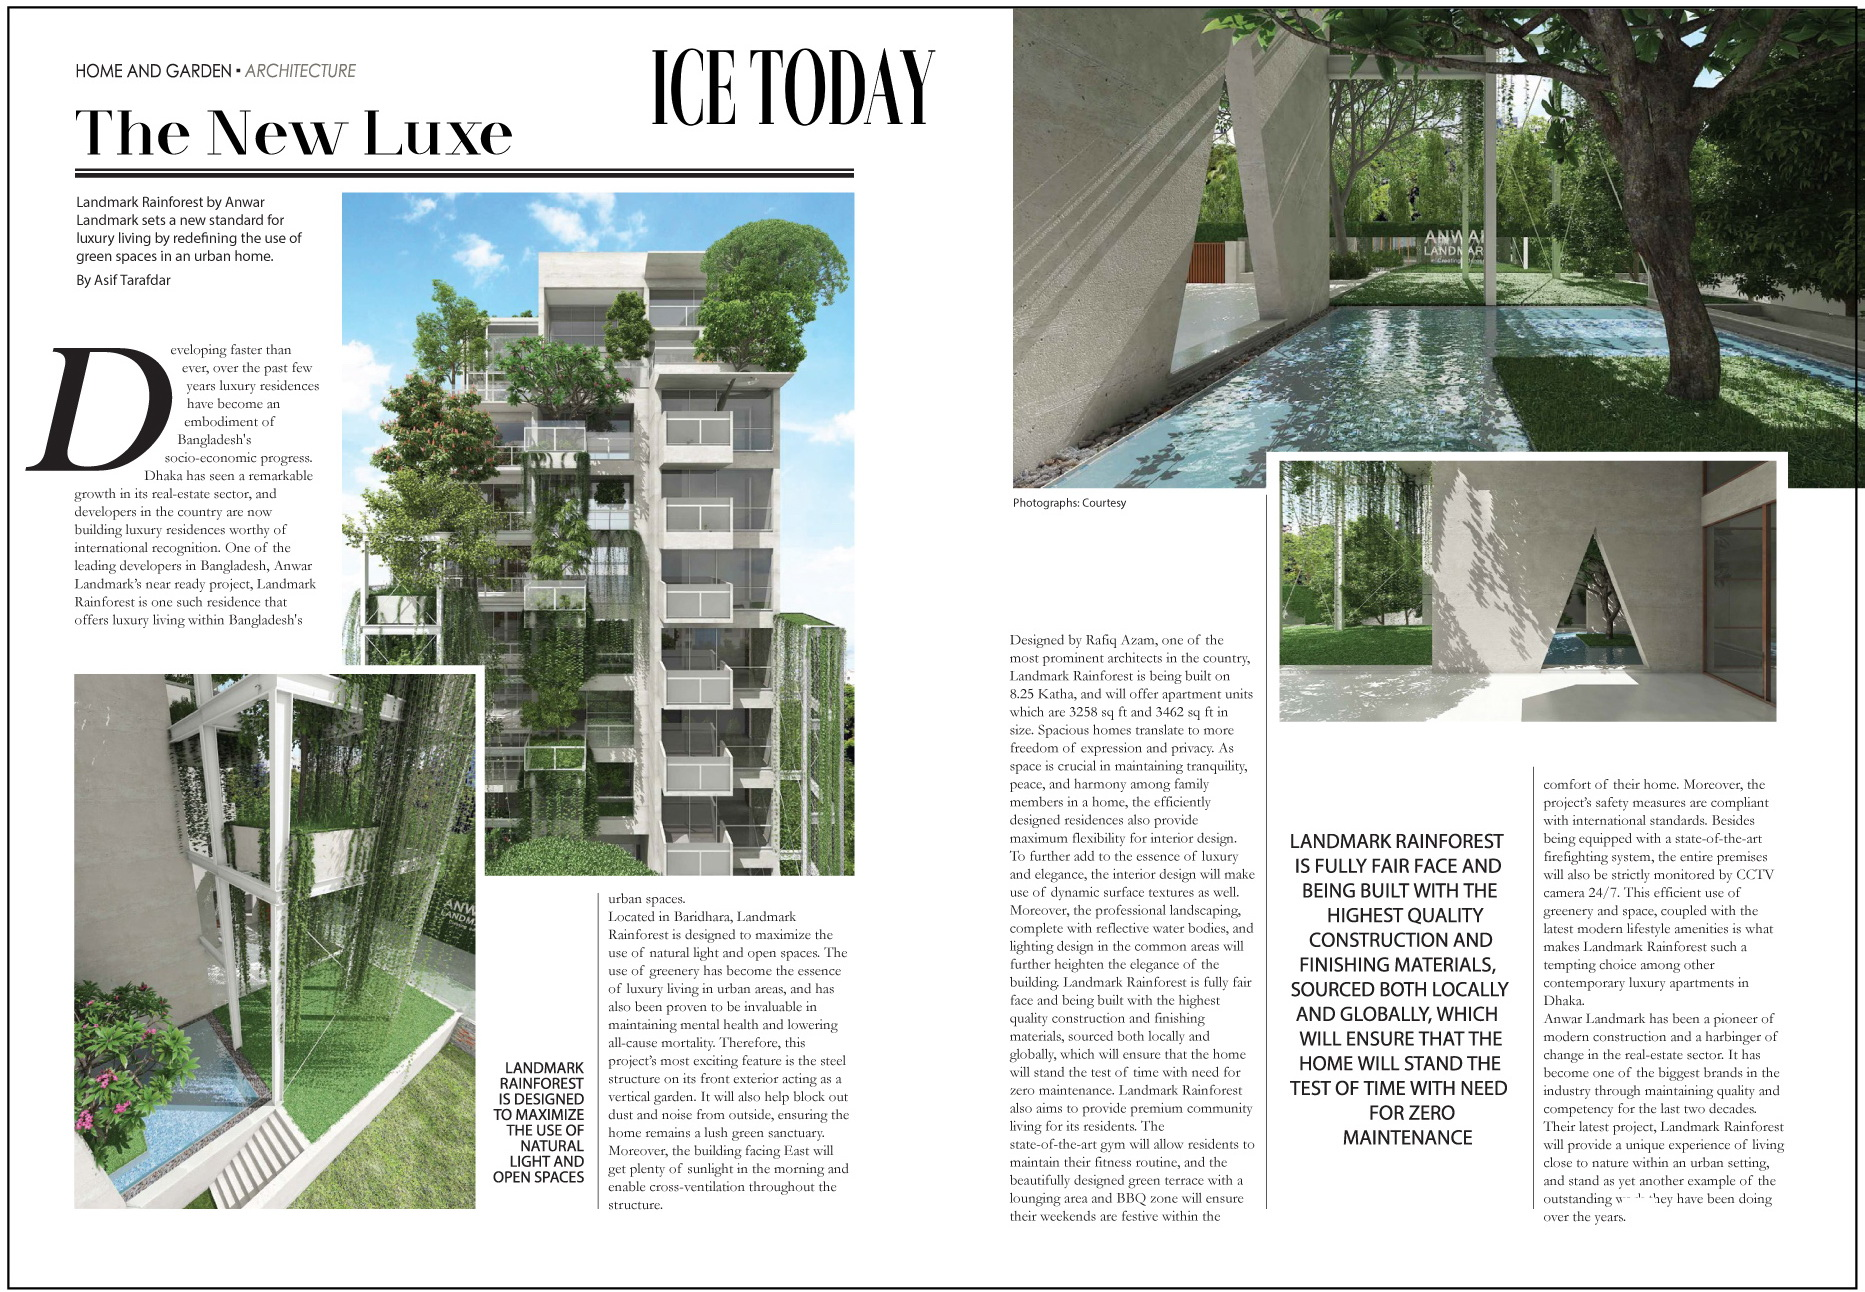 The New Luxe – Landmark Rainforest (Published in Ice Today in May 2021 Issue)